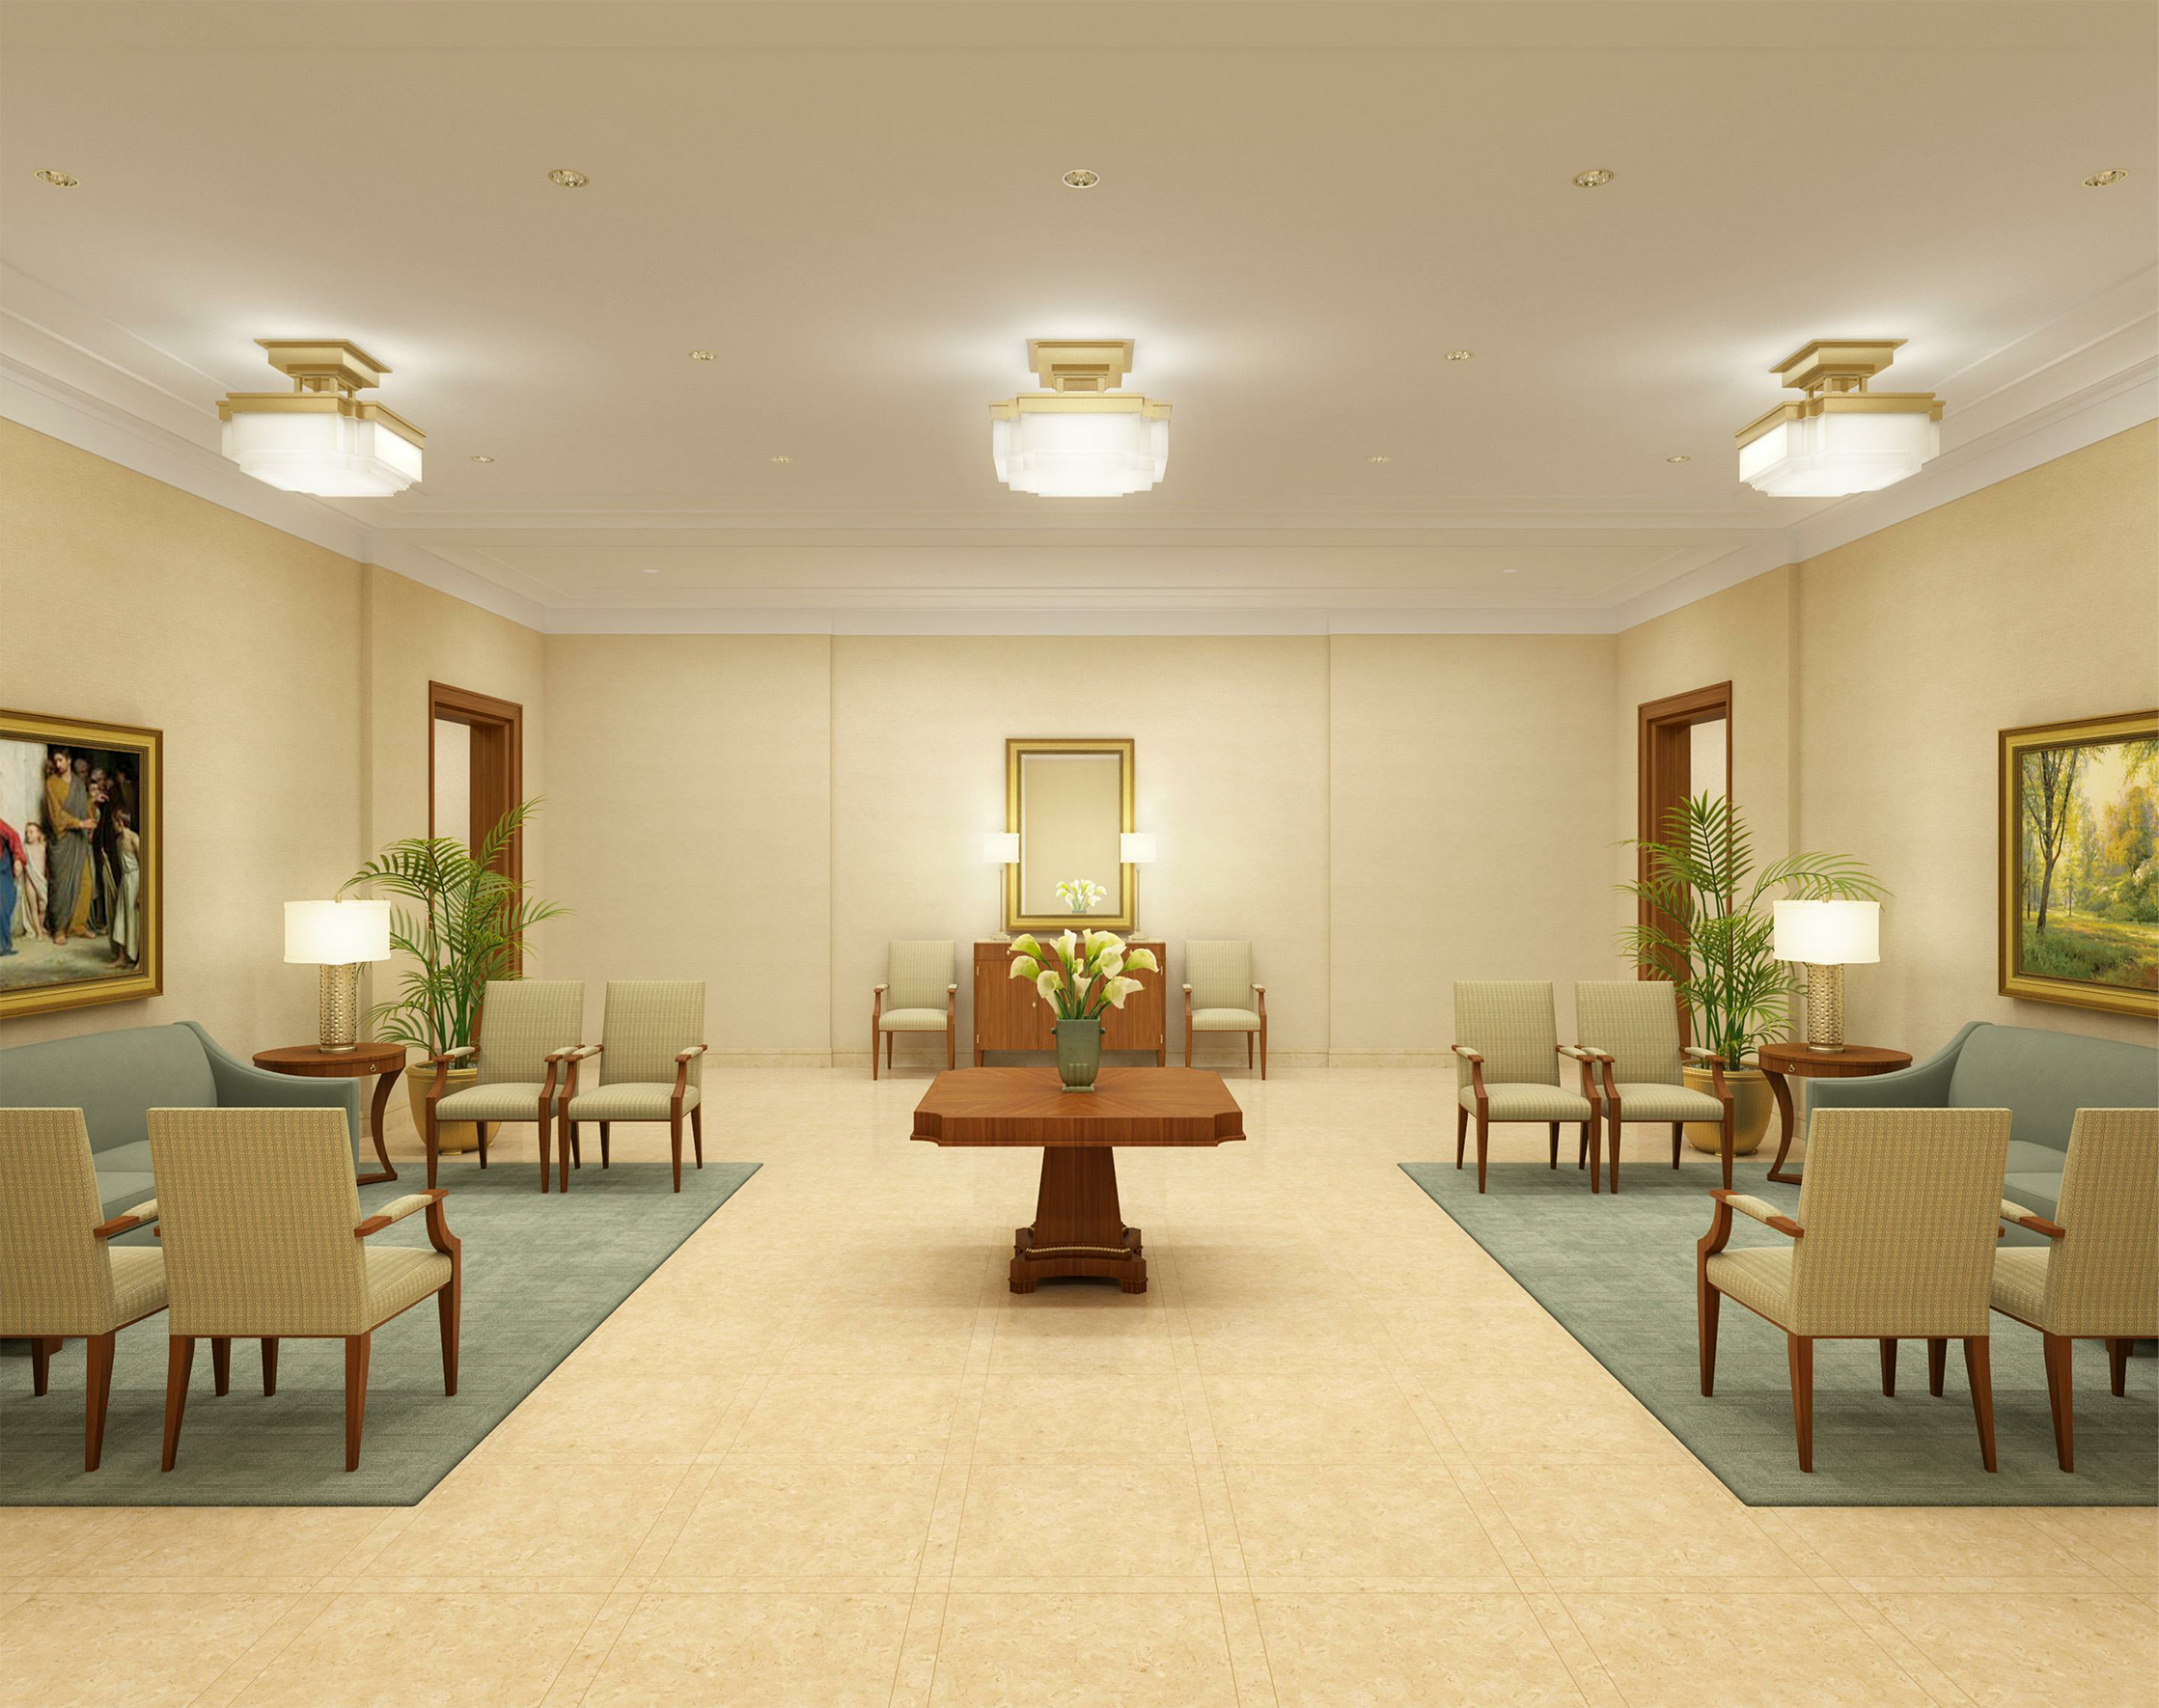 Rendering of lobby of Hamilton New Zealand Temple after renovation.